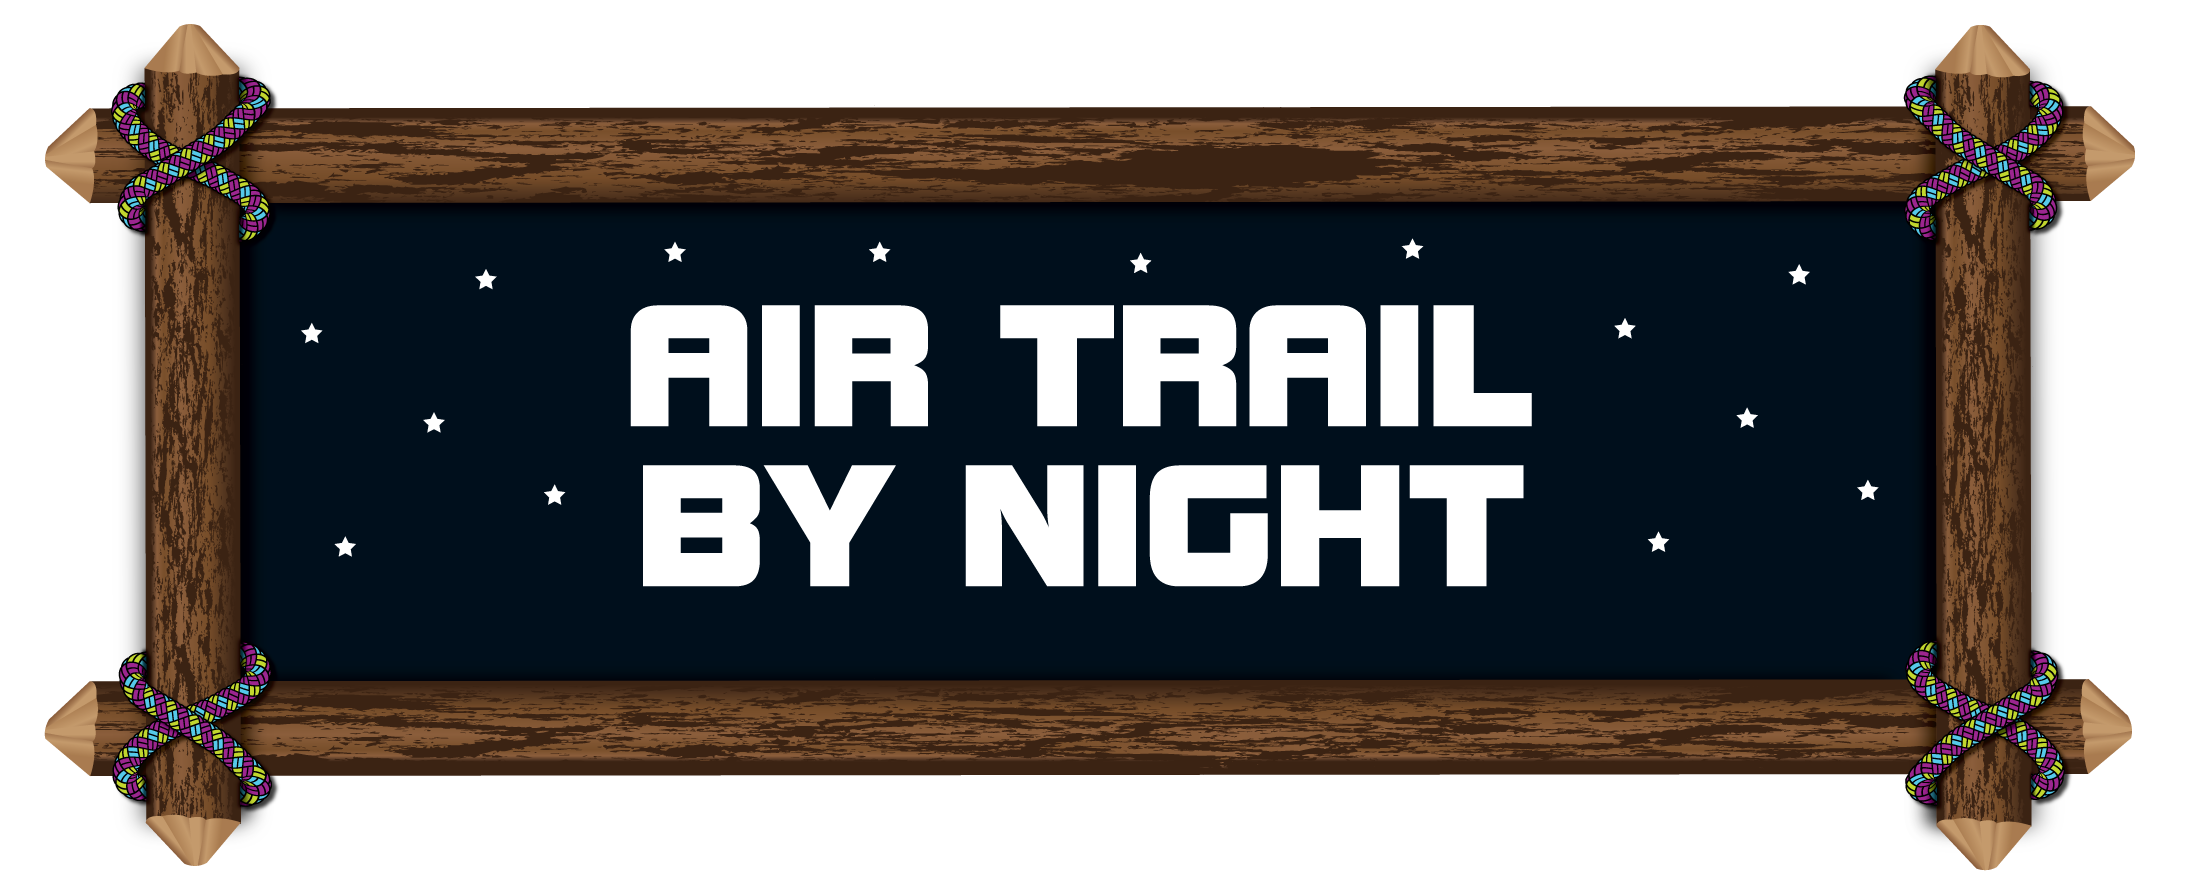 air-trail-by-night-wooden-sign